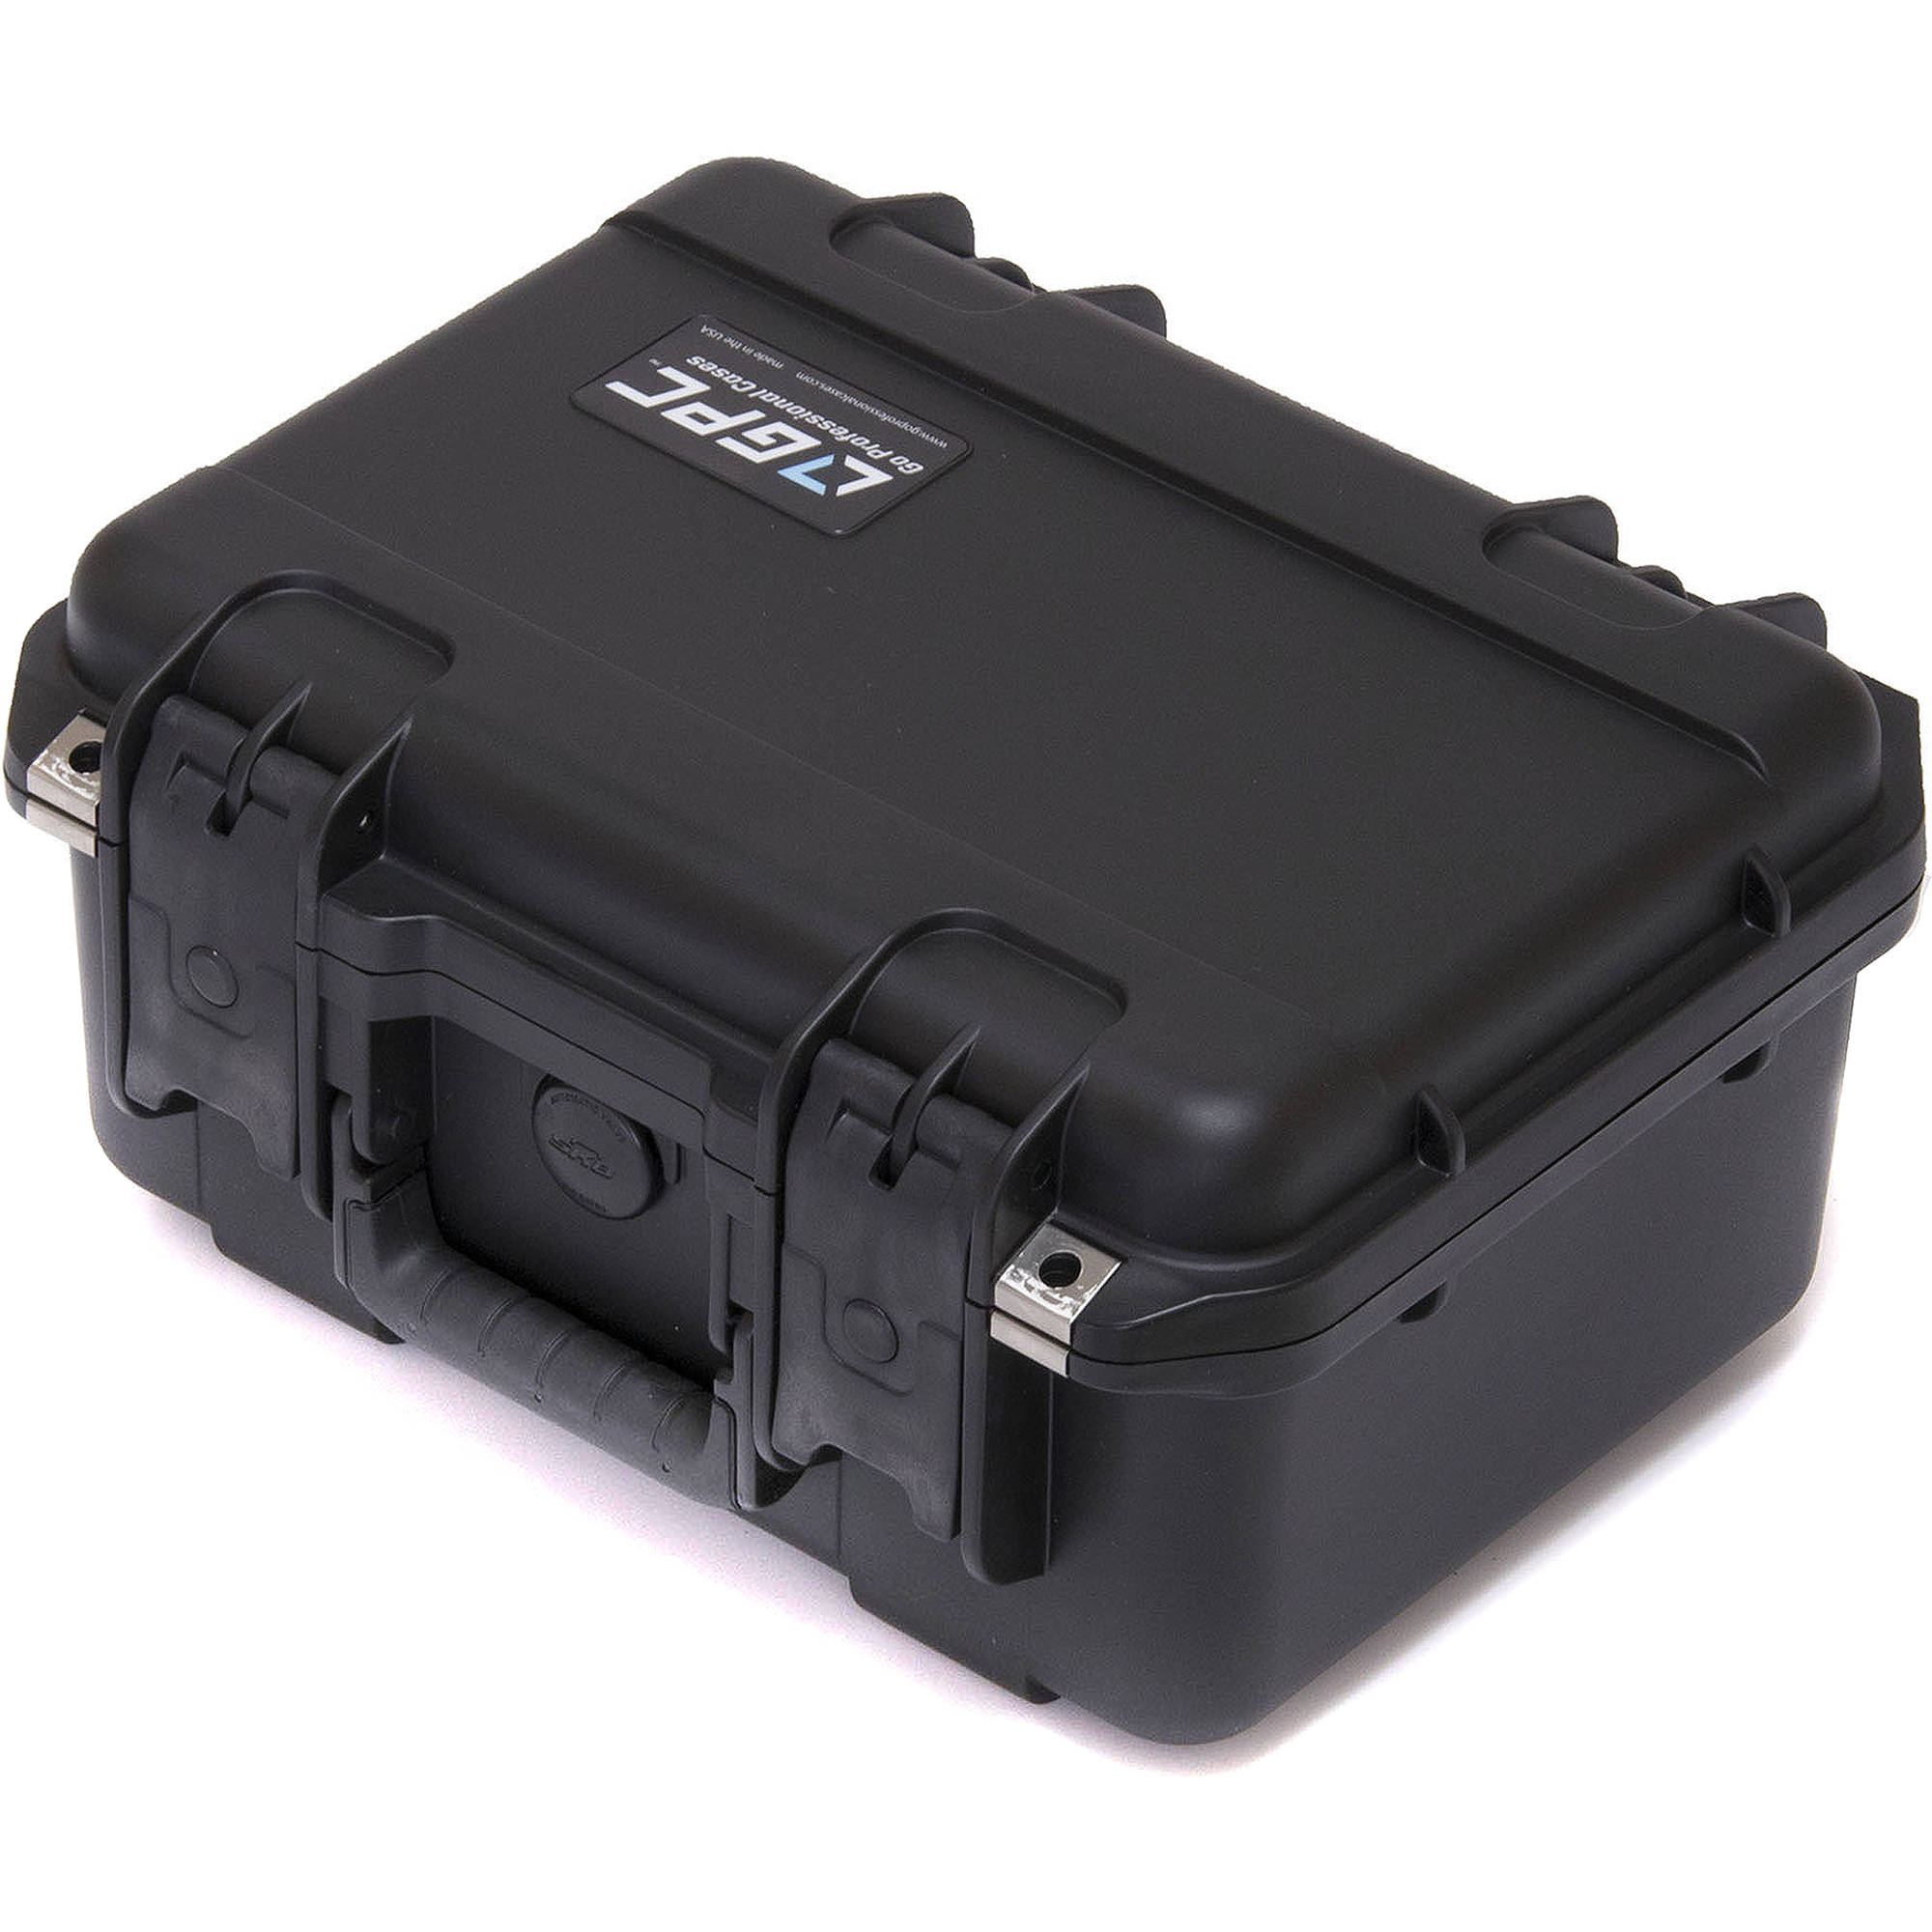 af868ce1d3e Go Professional Cases Hard Case for Mavic 2 Pro/Zoom and CrystalSky Monitor